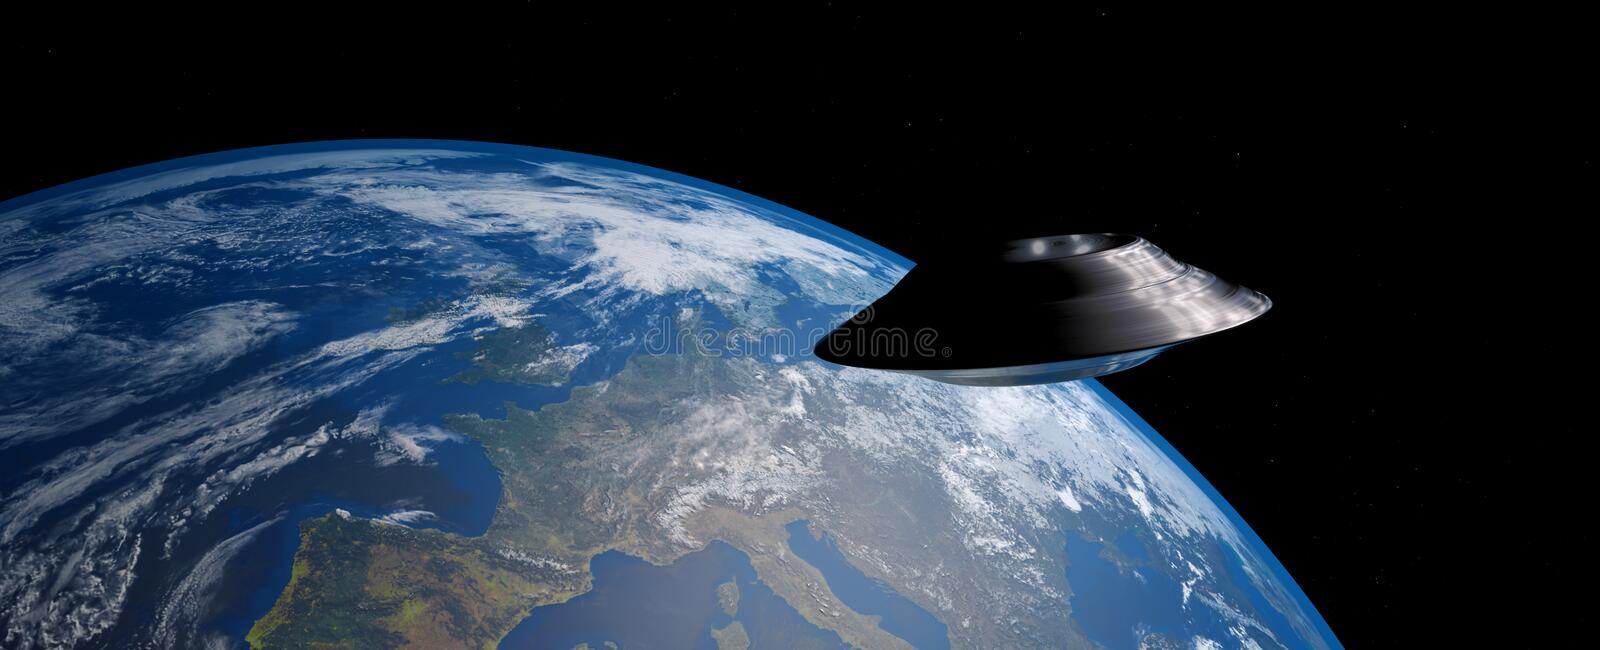 Extremely detailed and realistic high resolution 3D image of an UFO / flying saucer orbiting Earth shot from outer space. royalty free illustration